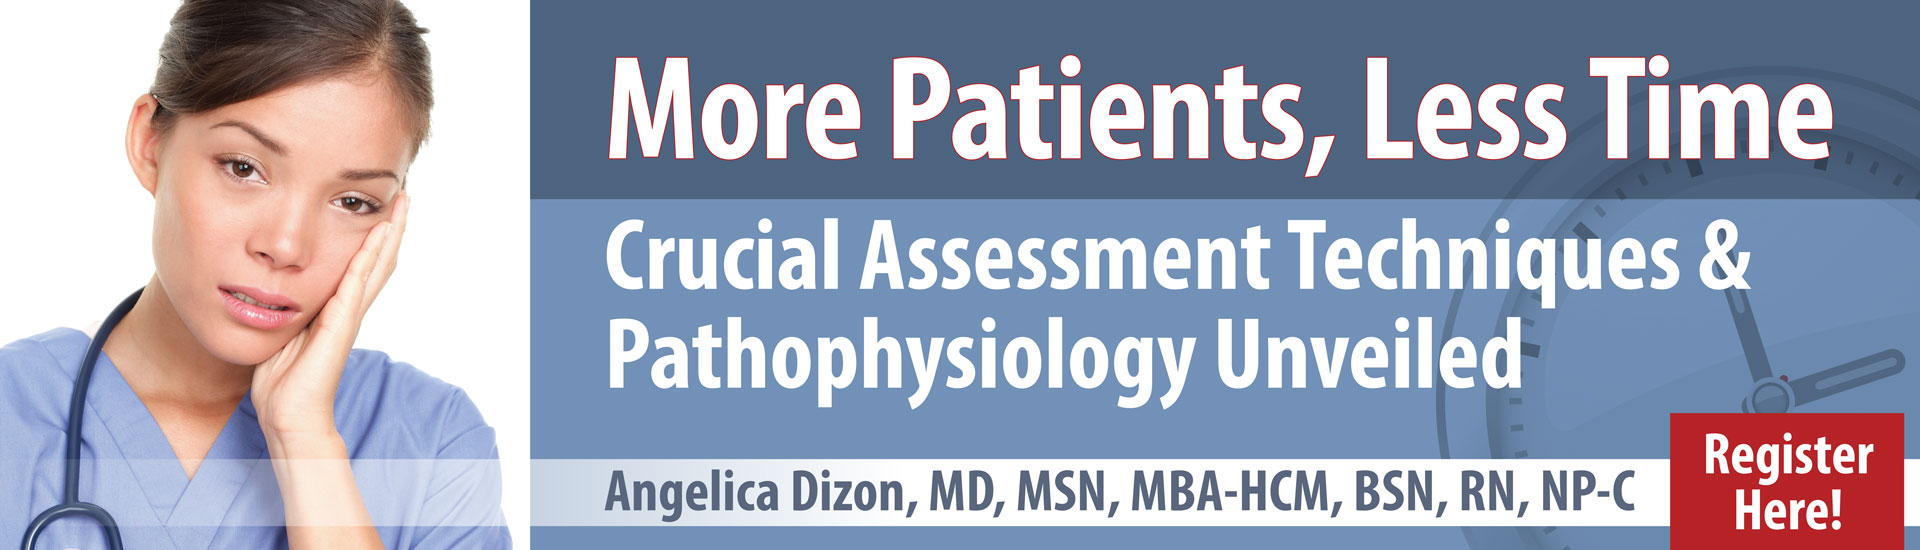 More Patients, Less Time: Crucial Assessment Techniques & Pathophysiology Unveiled